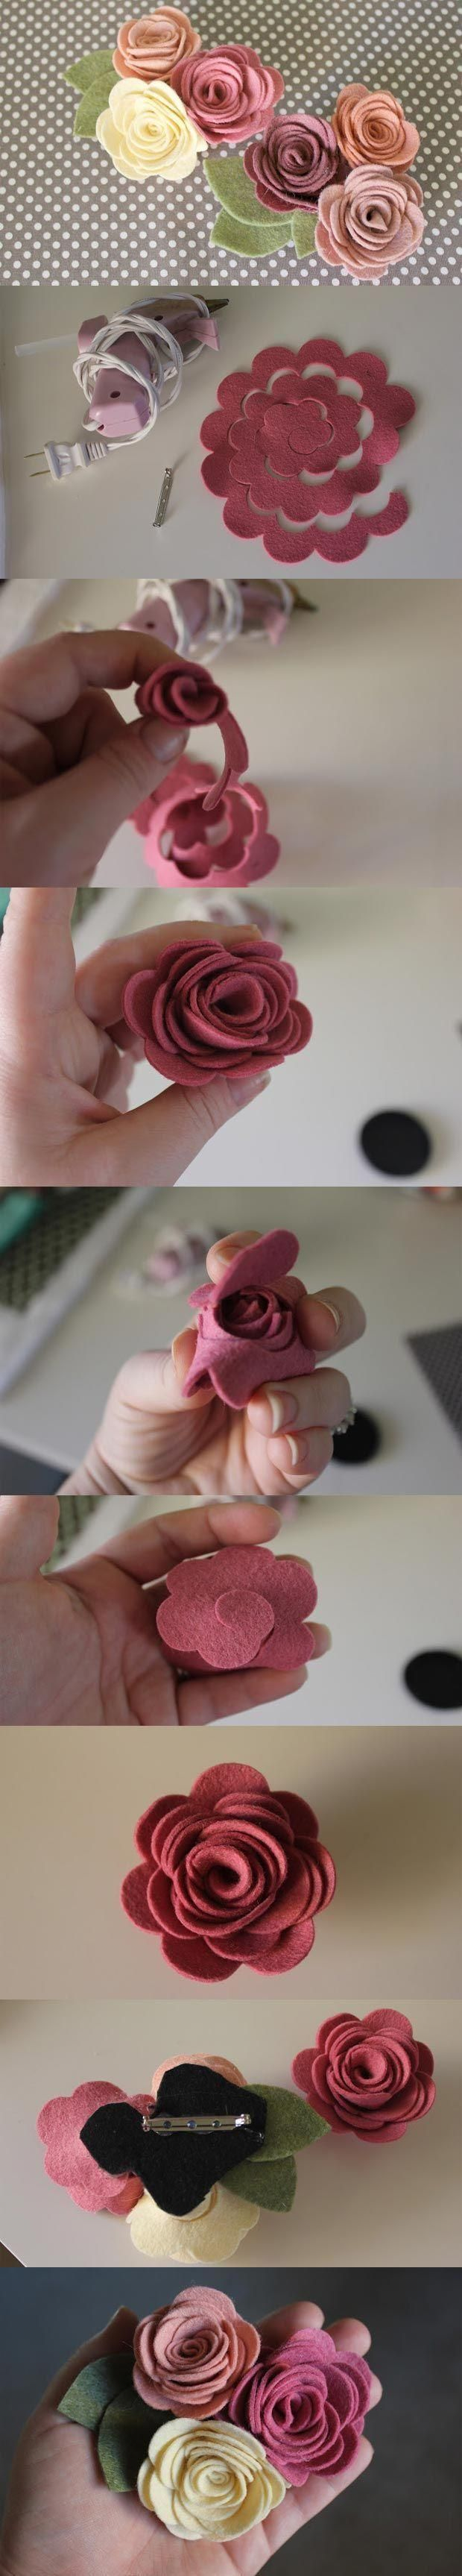 I have this little spiral flower original die and it is the best thing ever, got mine from Stampin up!